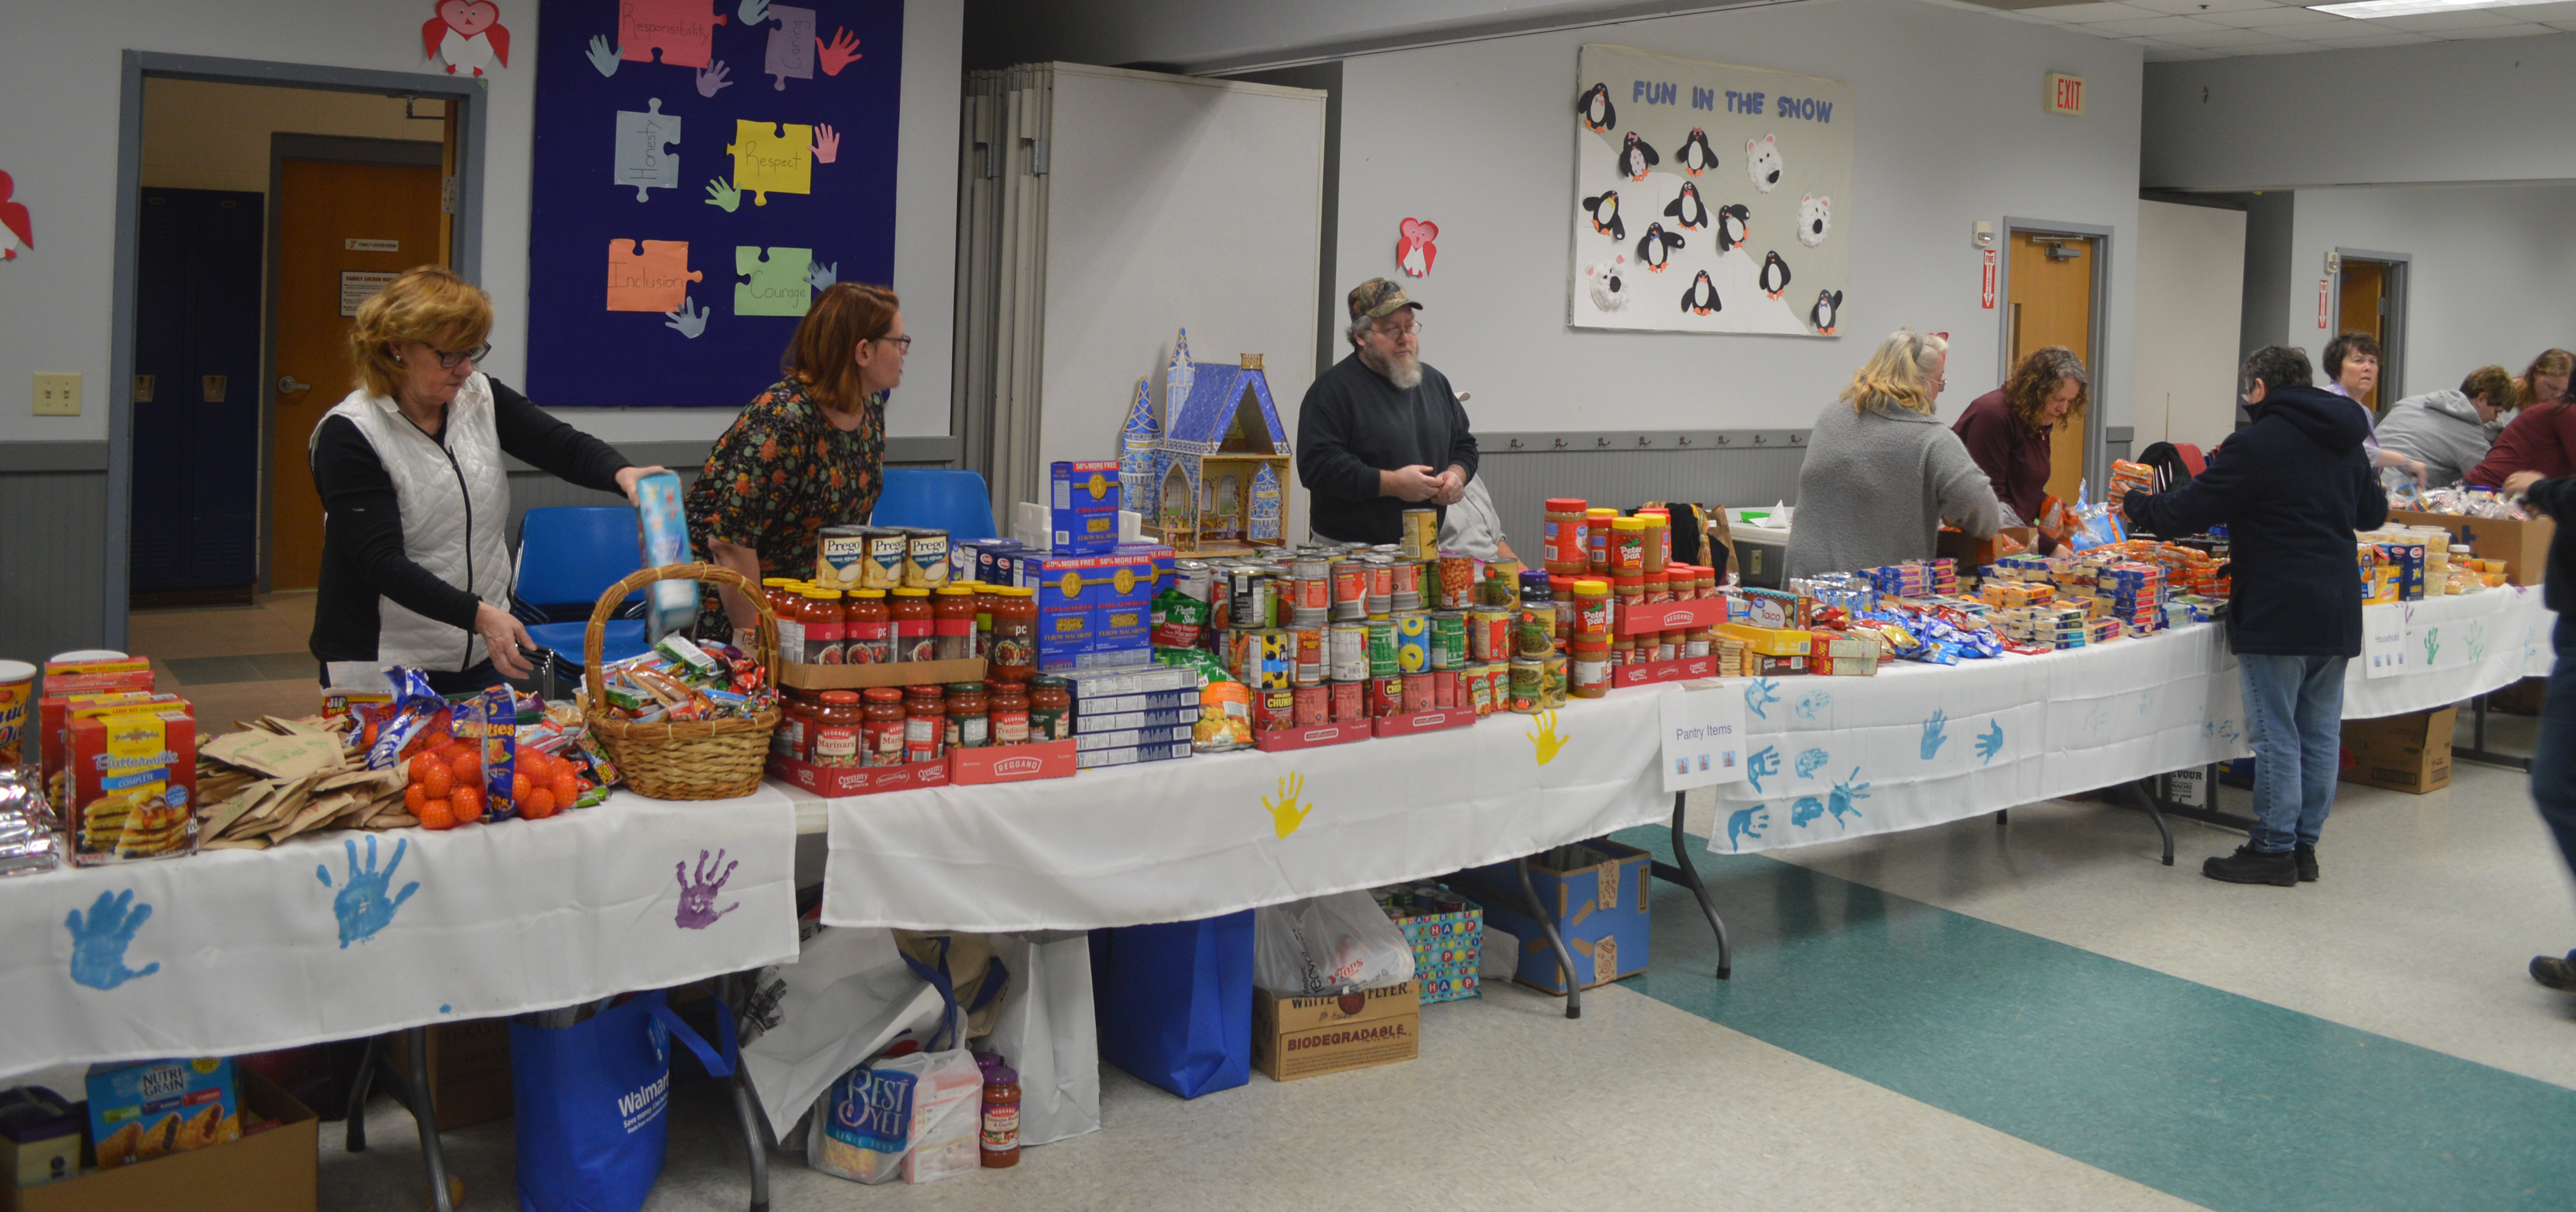 Community donation night has another powerful success